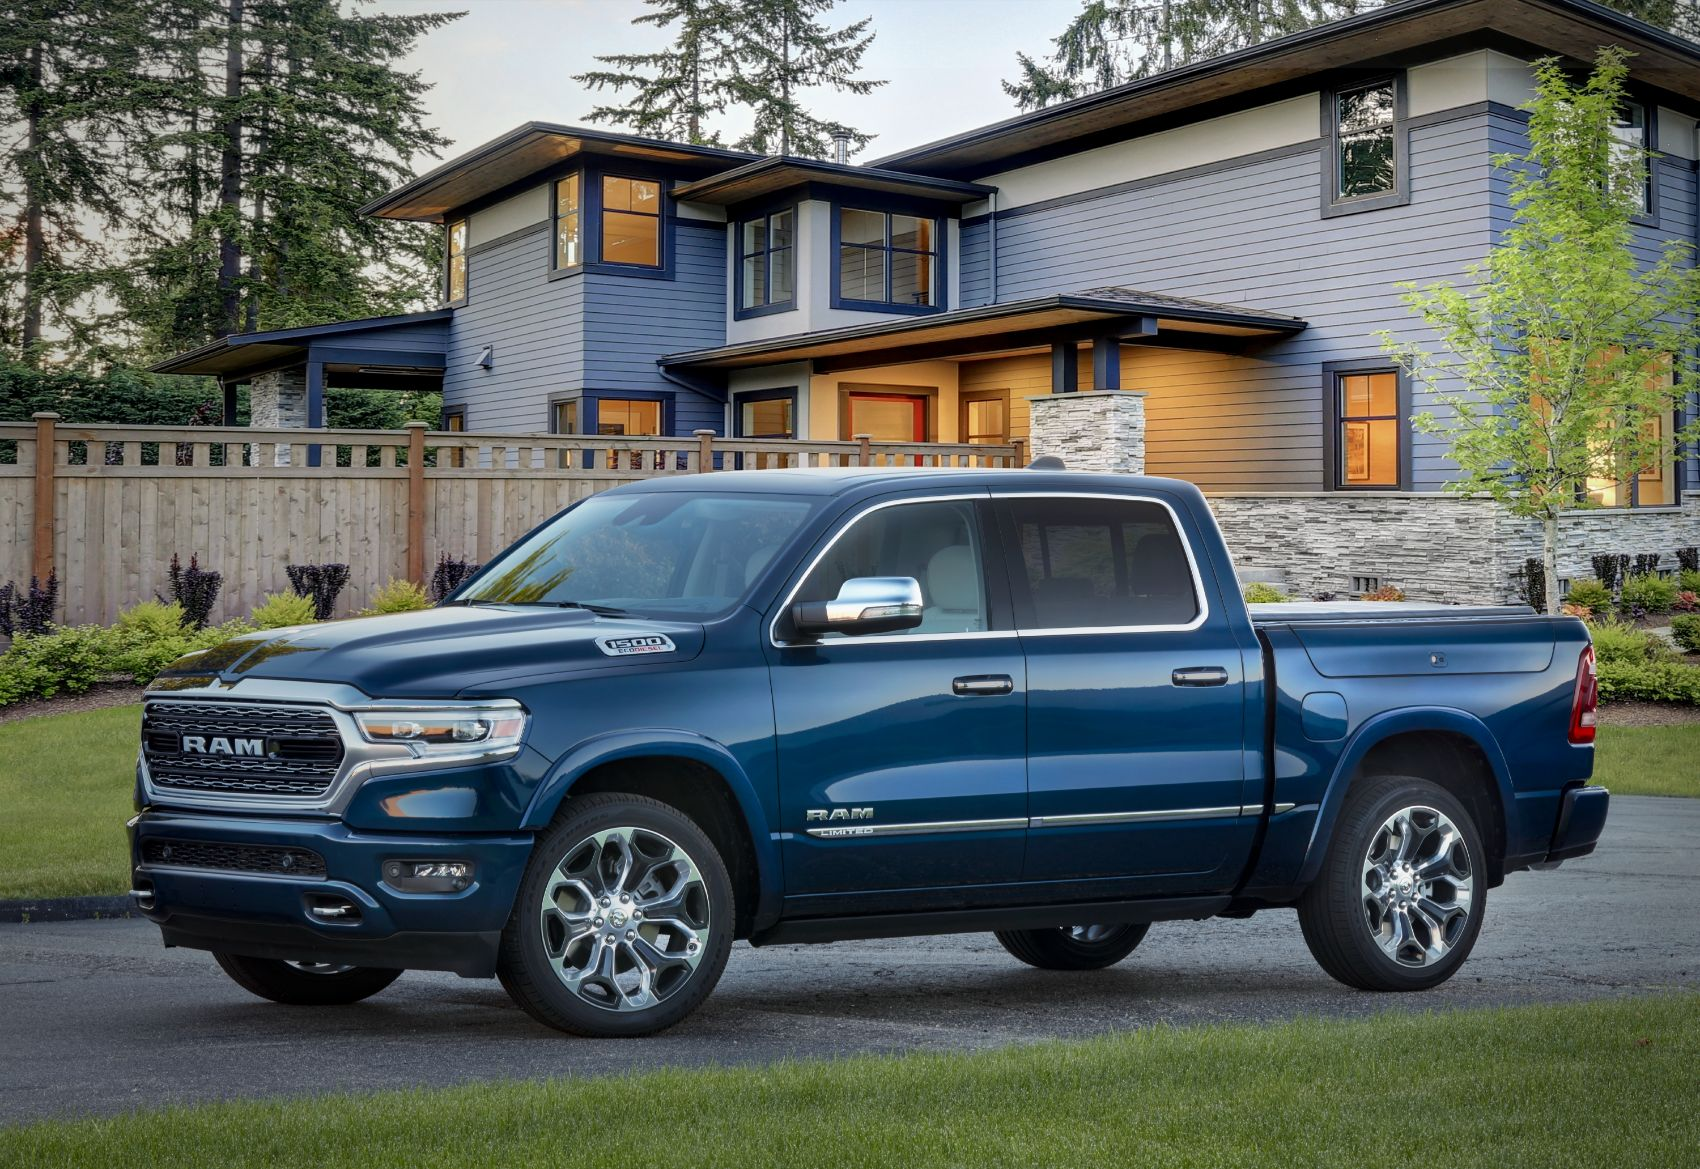 2022 Ram 1500 Limited Edition Celebrates a Decade of Cool Trucks